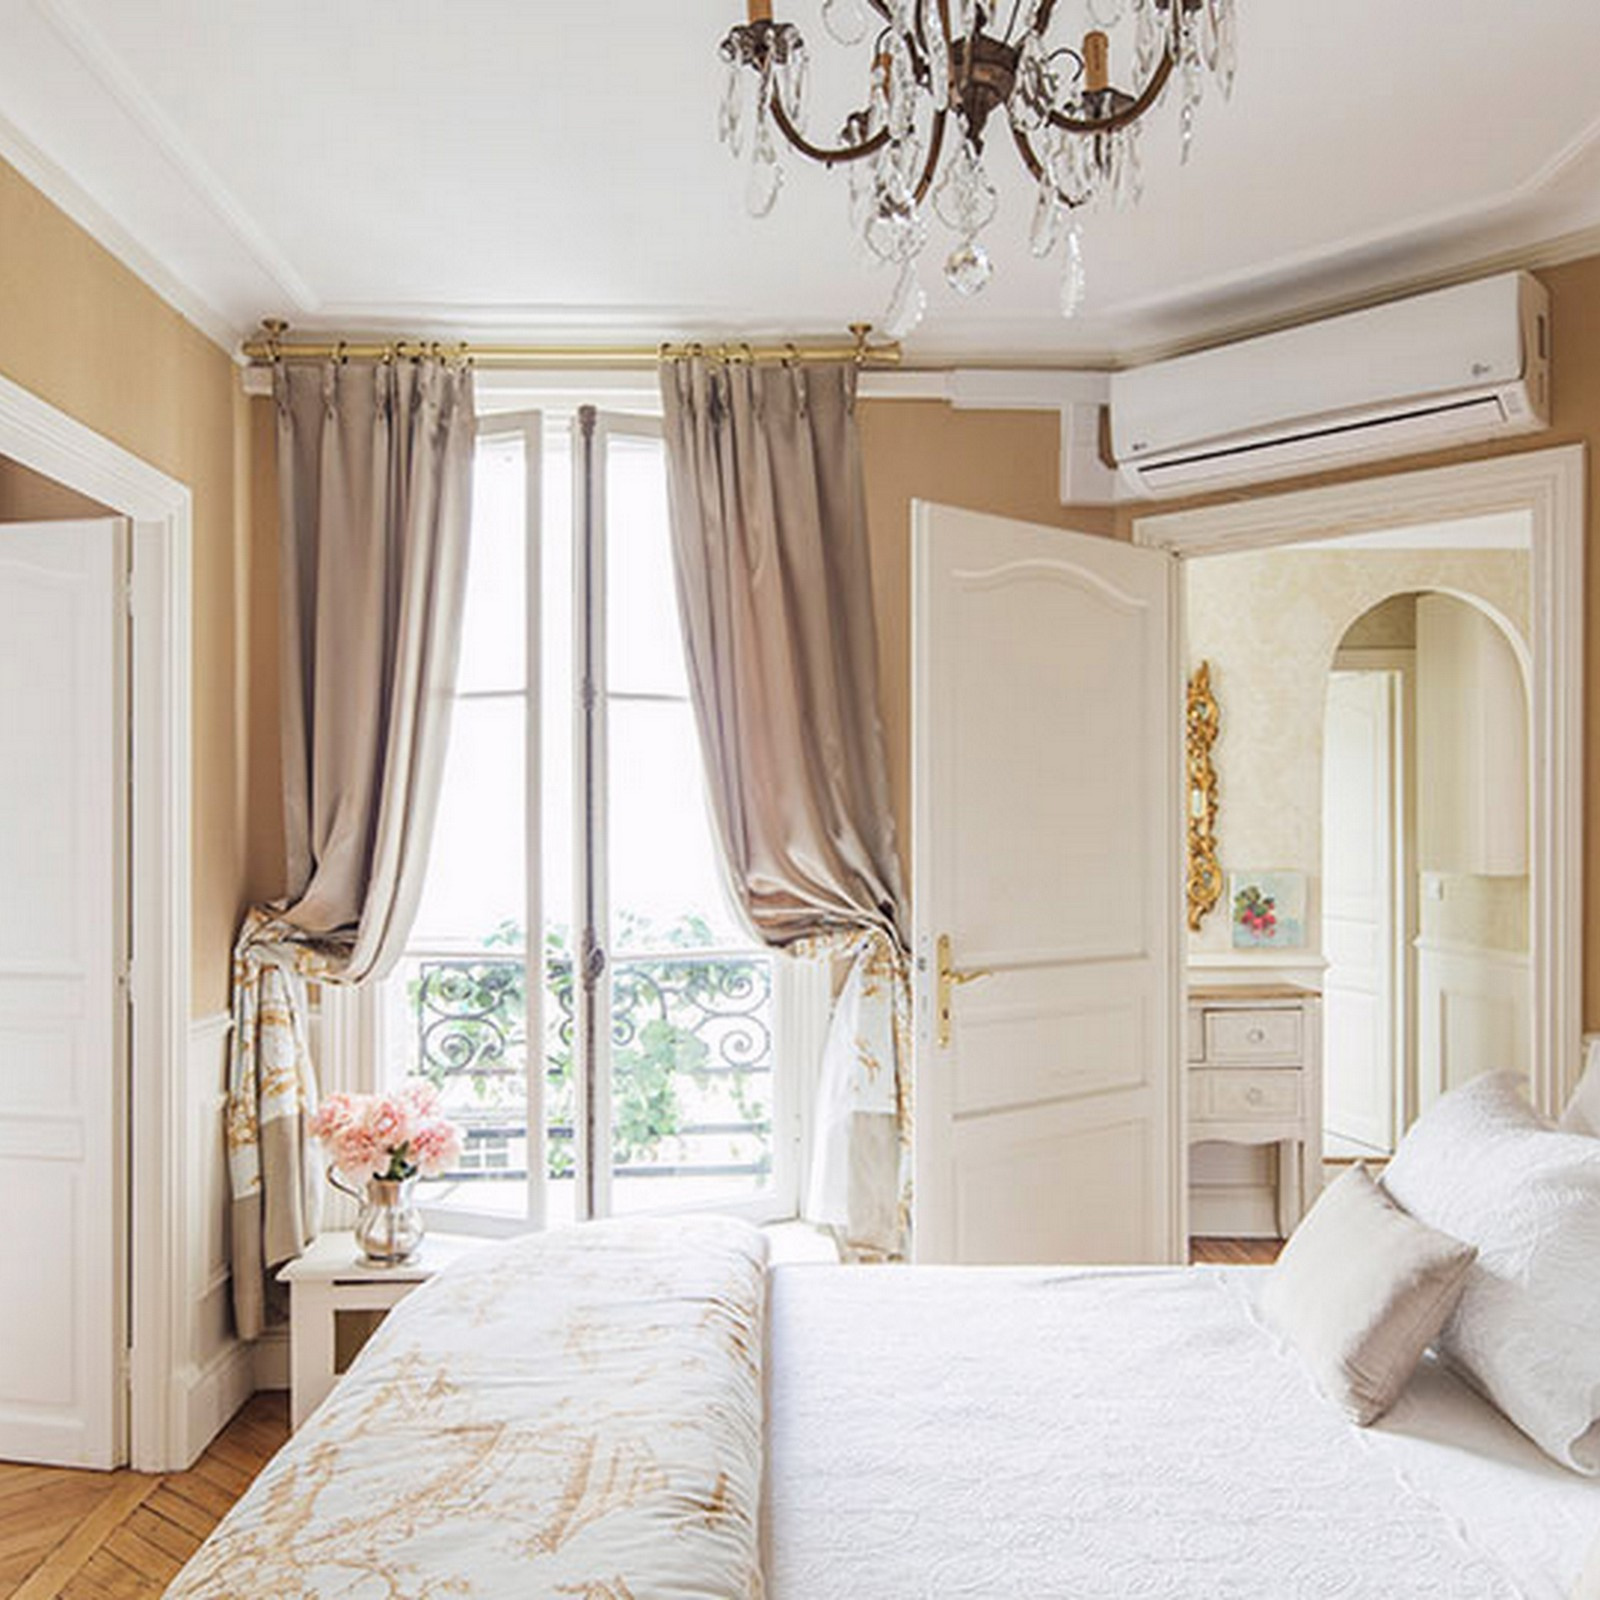 Decor Inspiration A Paris Apartment Cool Chic Style Fashion